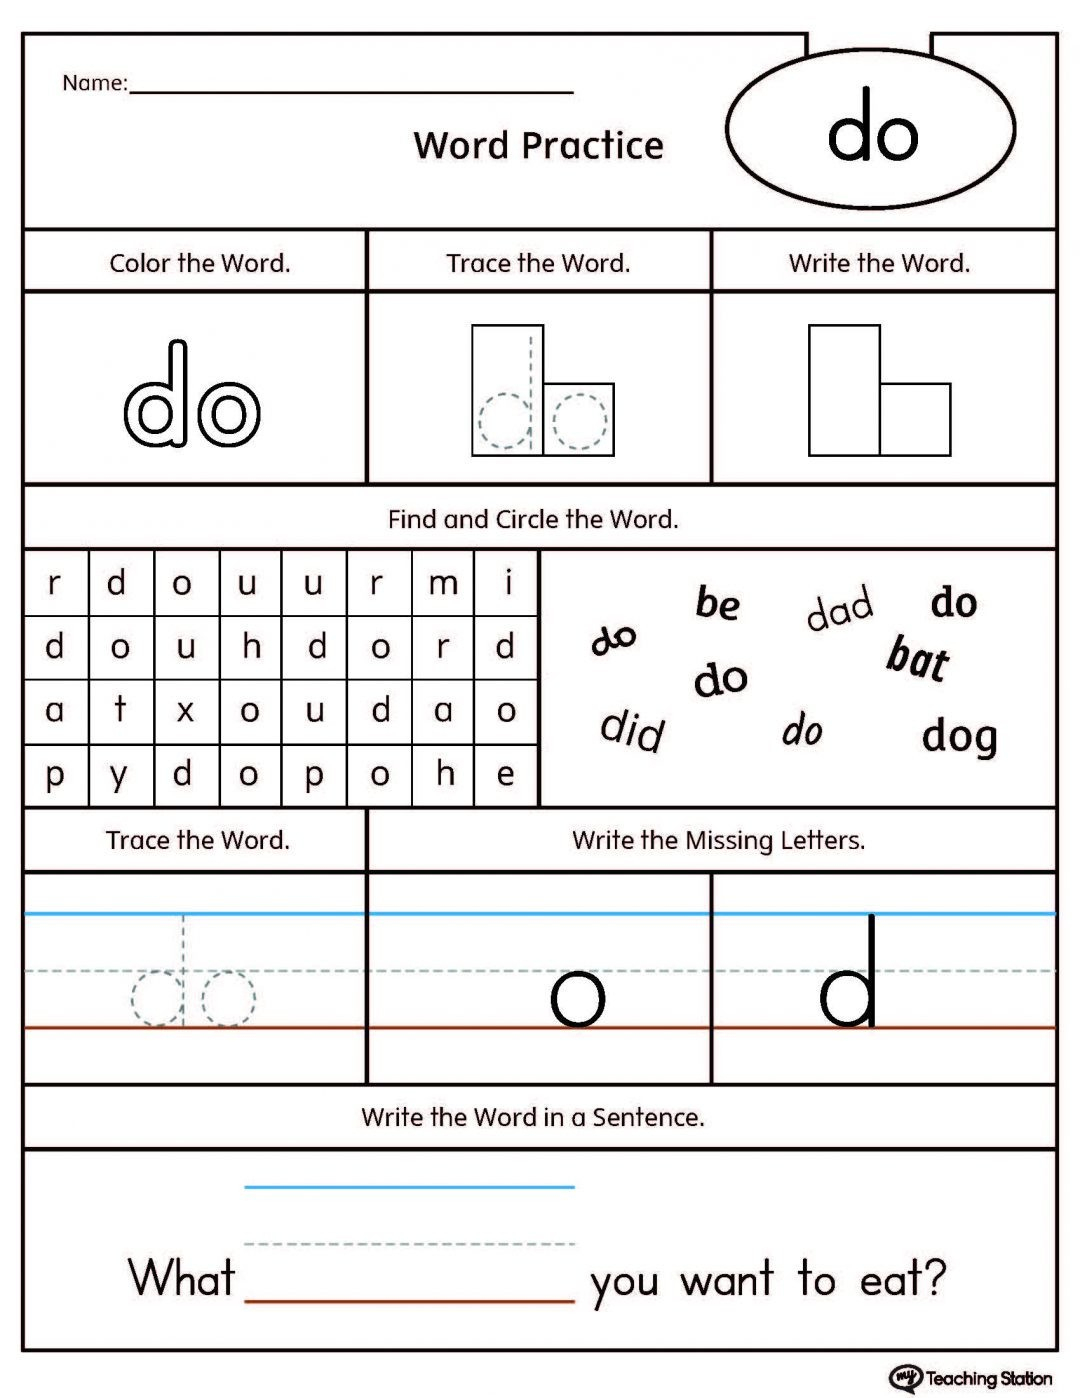 Worksheet : Missing Letters Worksheets Fresh Free Math Kindergarten - Free Printable Name Tracing Worksheets For Preschoolers